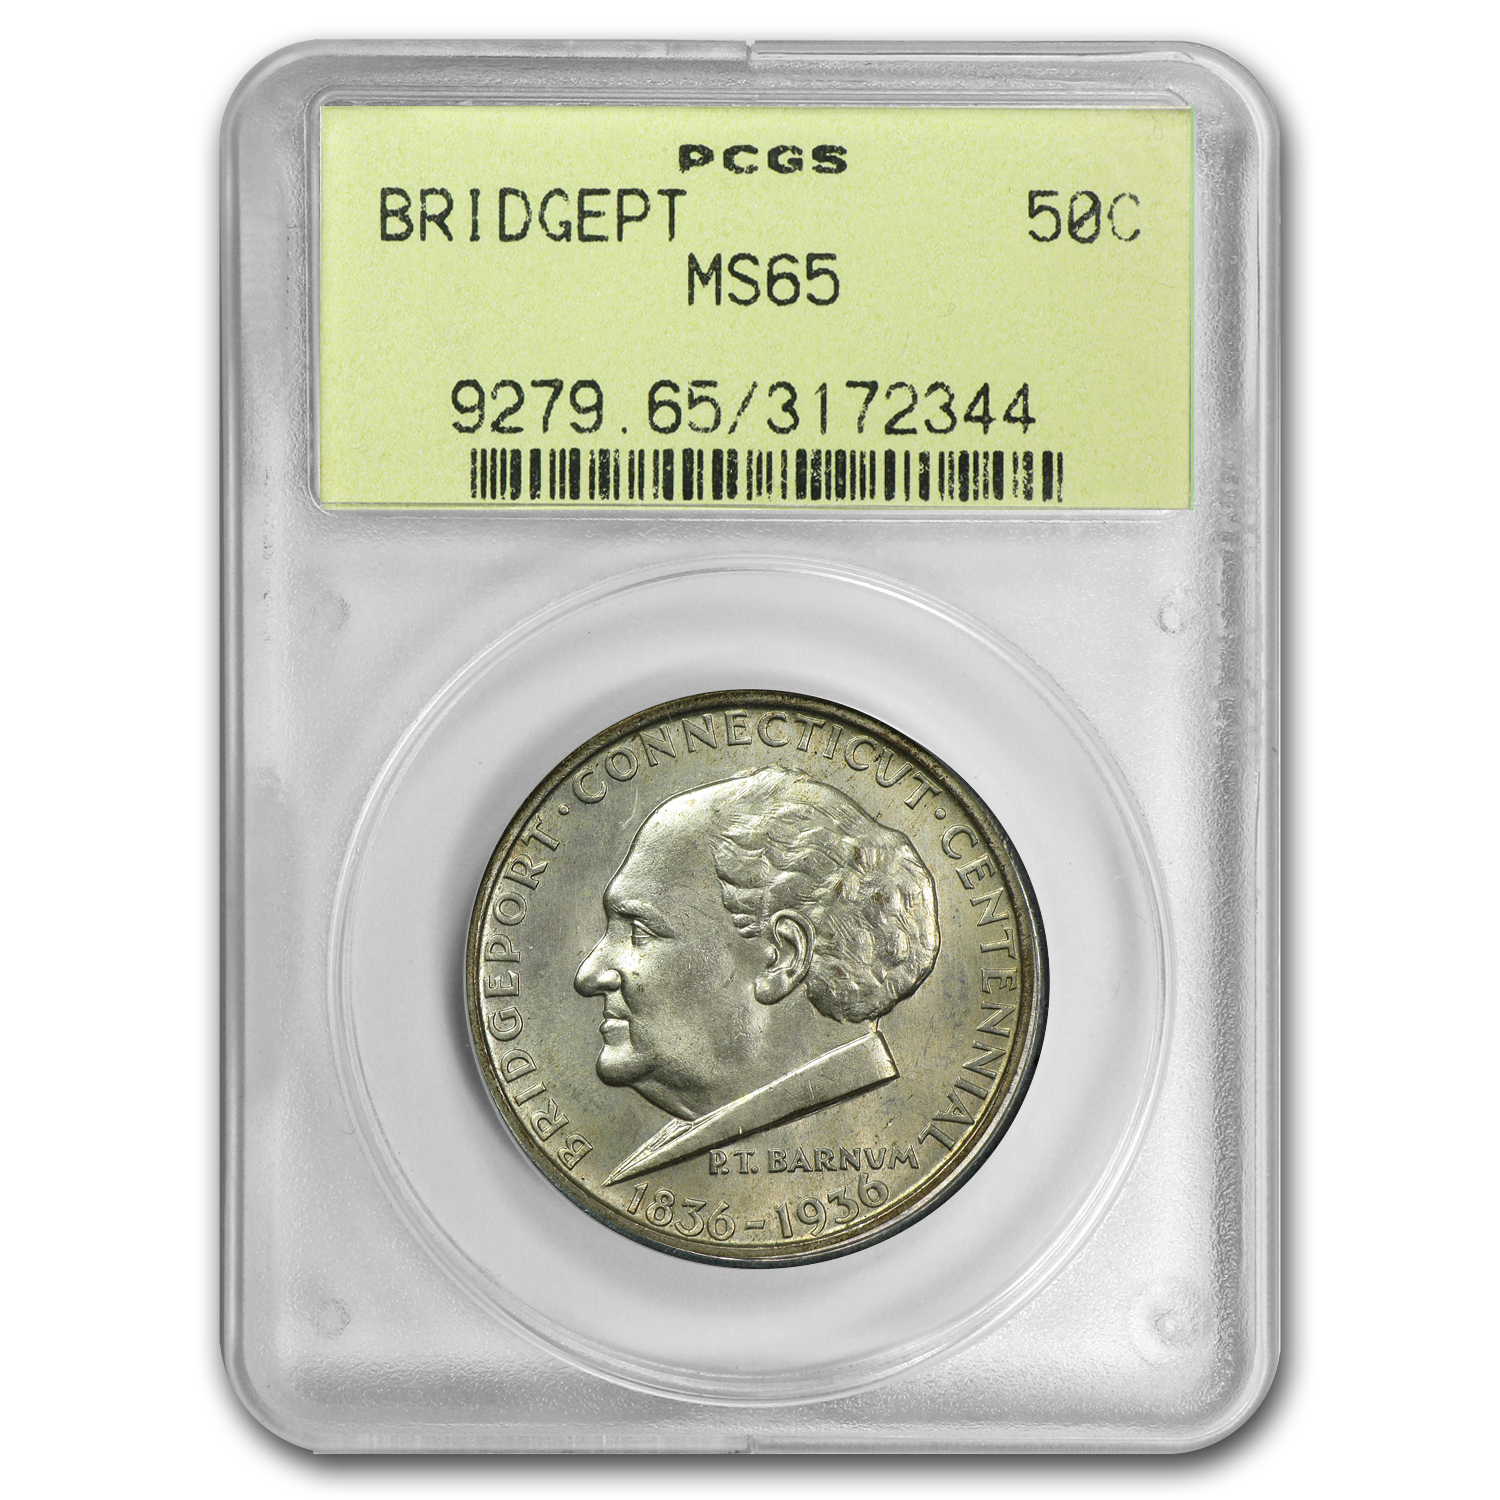 1936 Bridgeport Centennial MS-65 PCGS Nice Coin